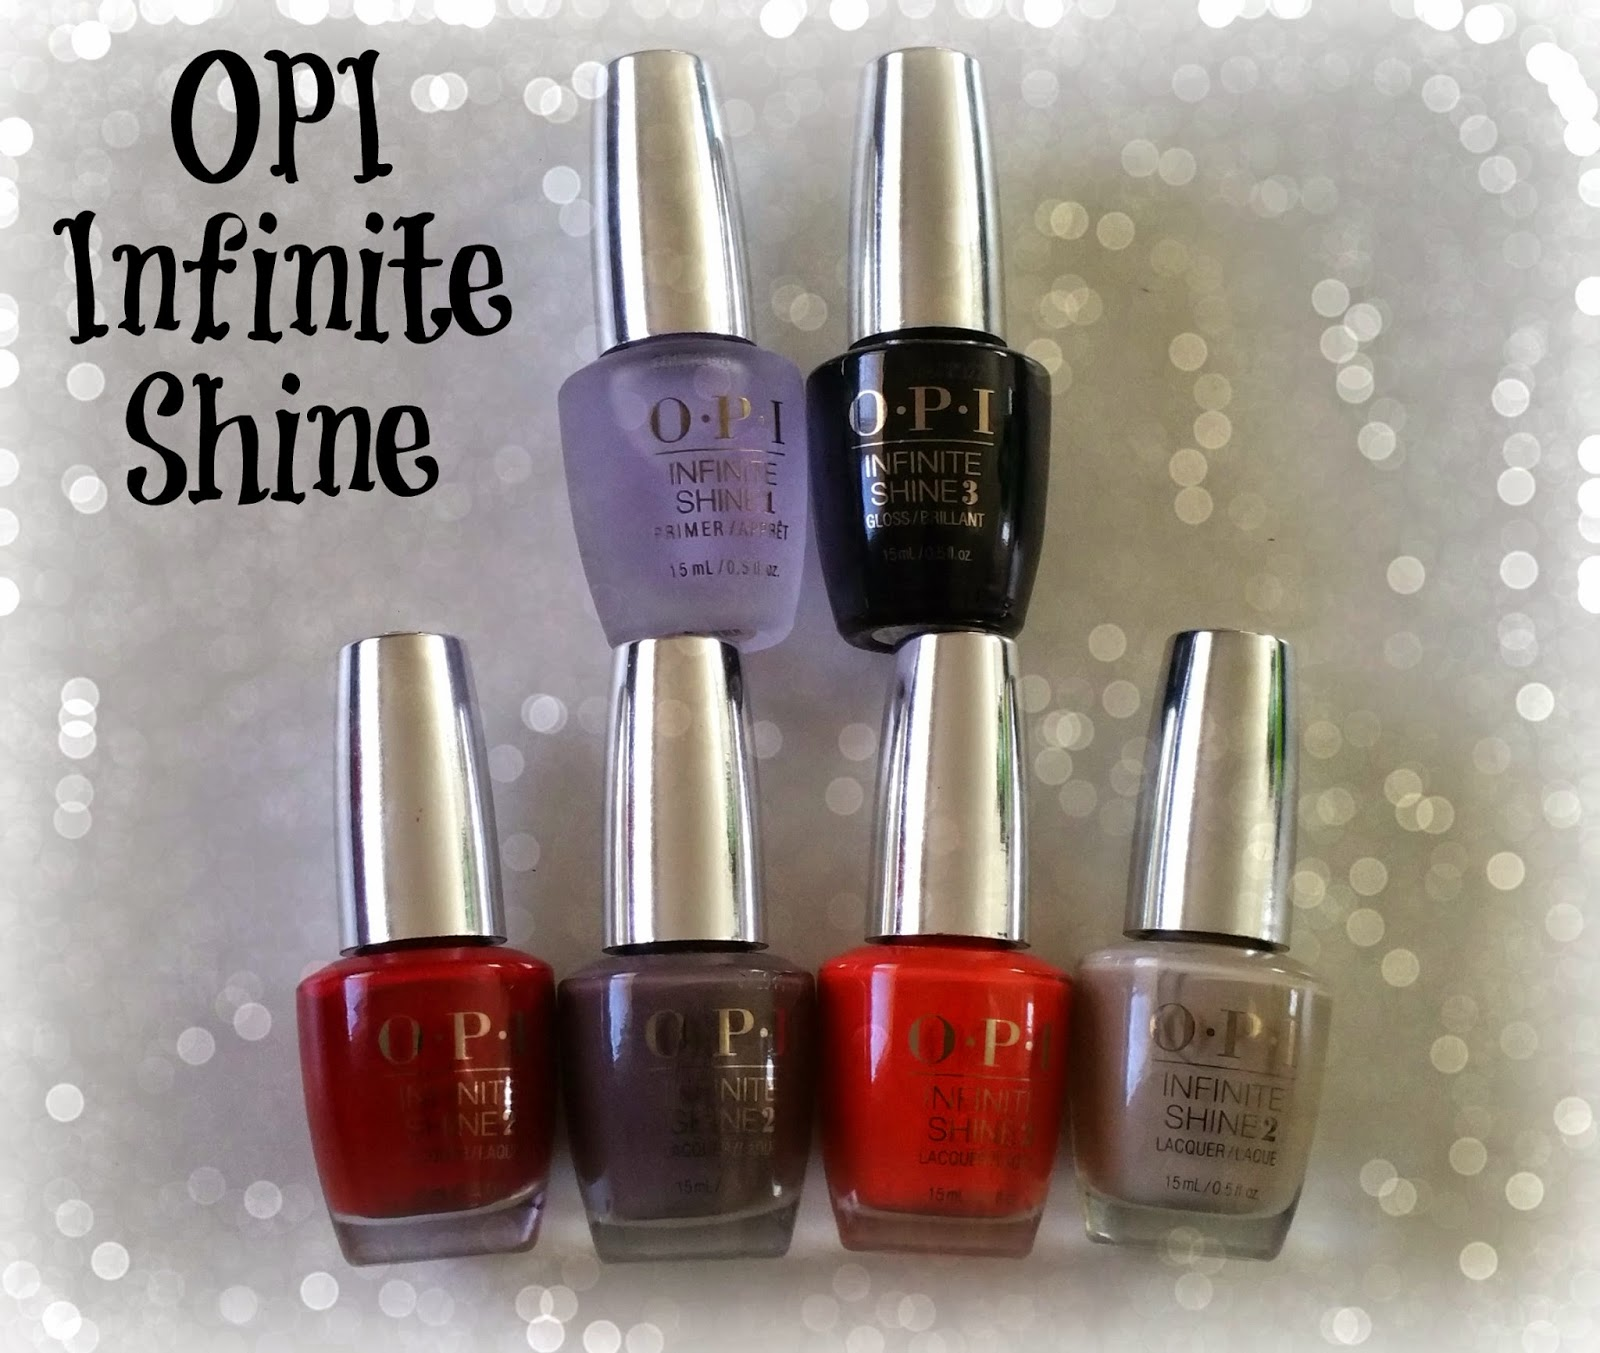 Obsessive Cosmetic Hoarders Unite!: NEW! OPI Infinite Shine Gel ...